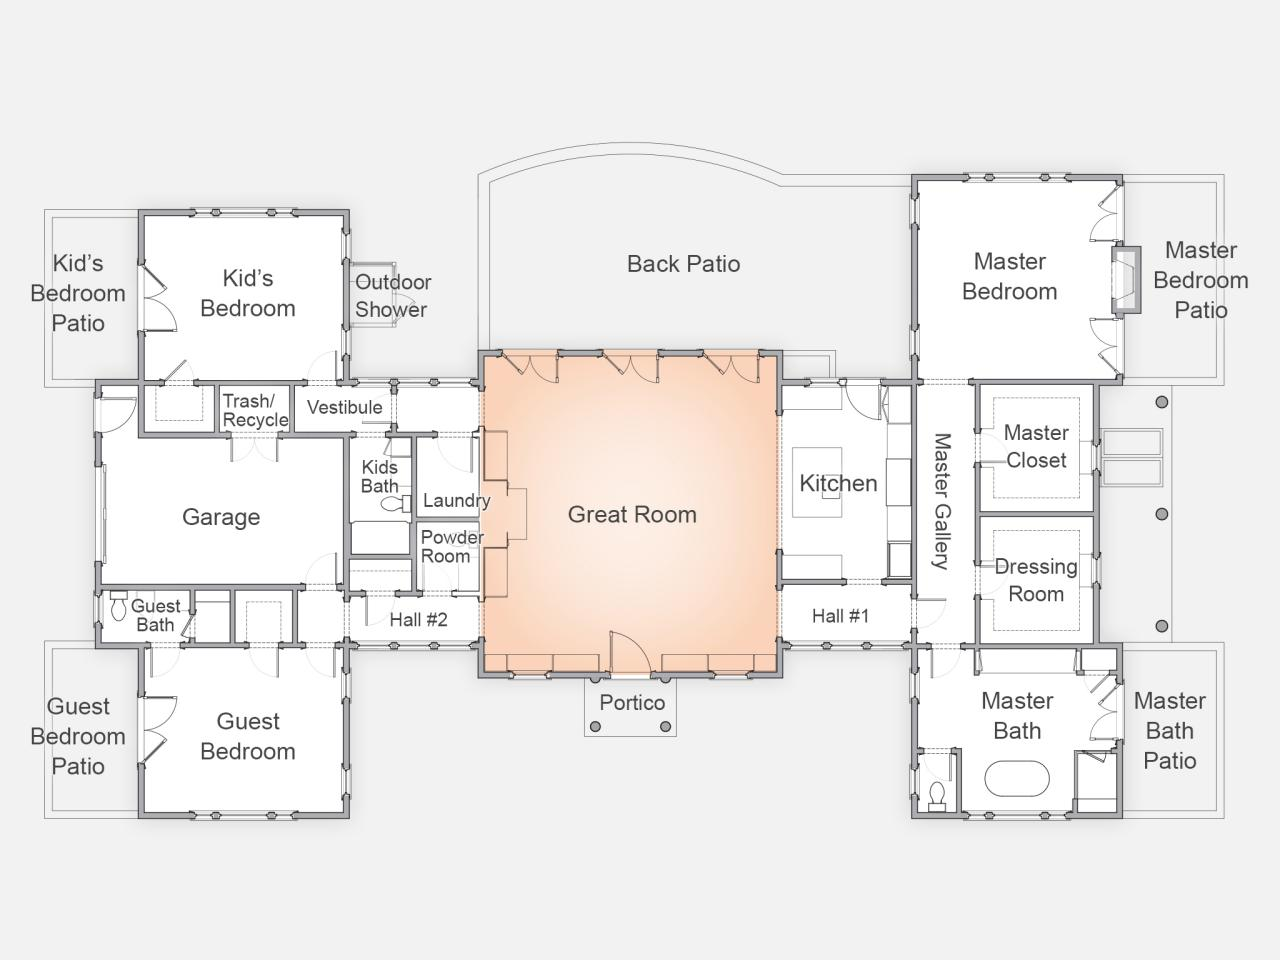 Hgtv dream home 2015 floor plan building hgtv dream home for New home plans 2015